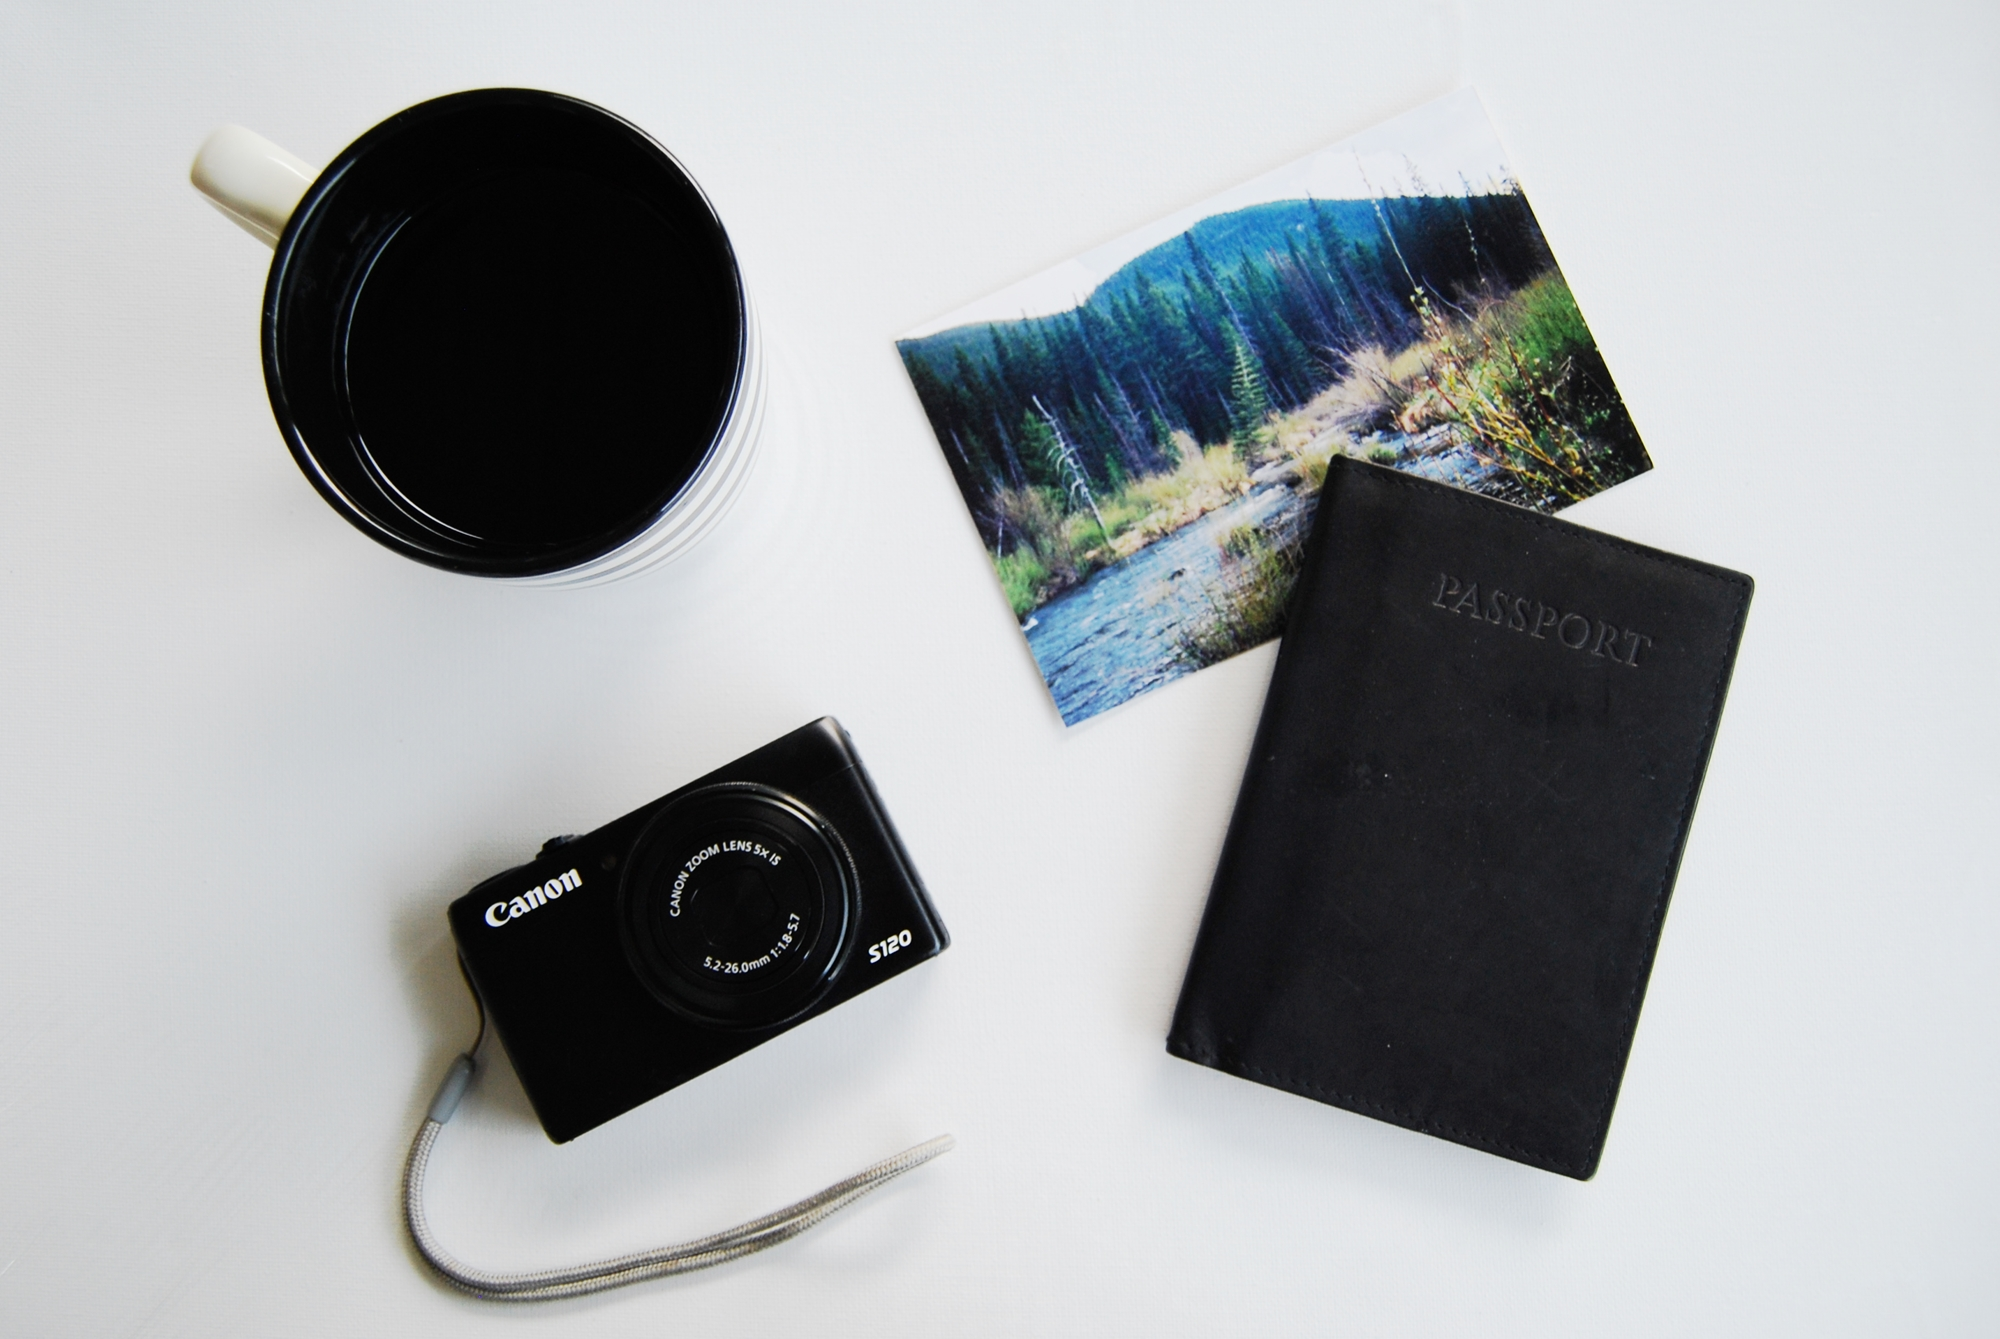 30 Day Photography Challenge From Expert Photography Also